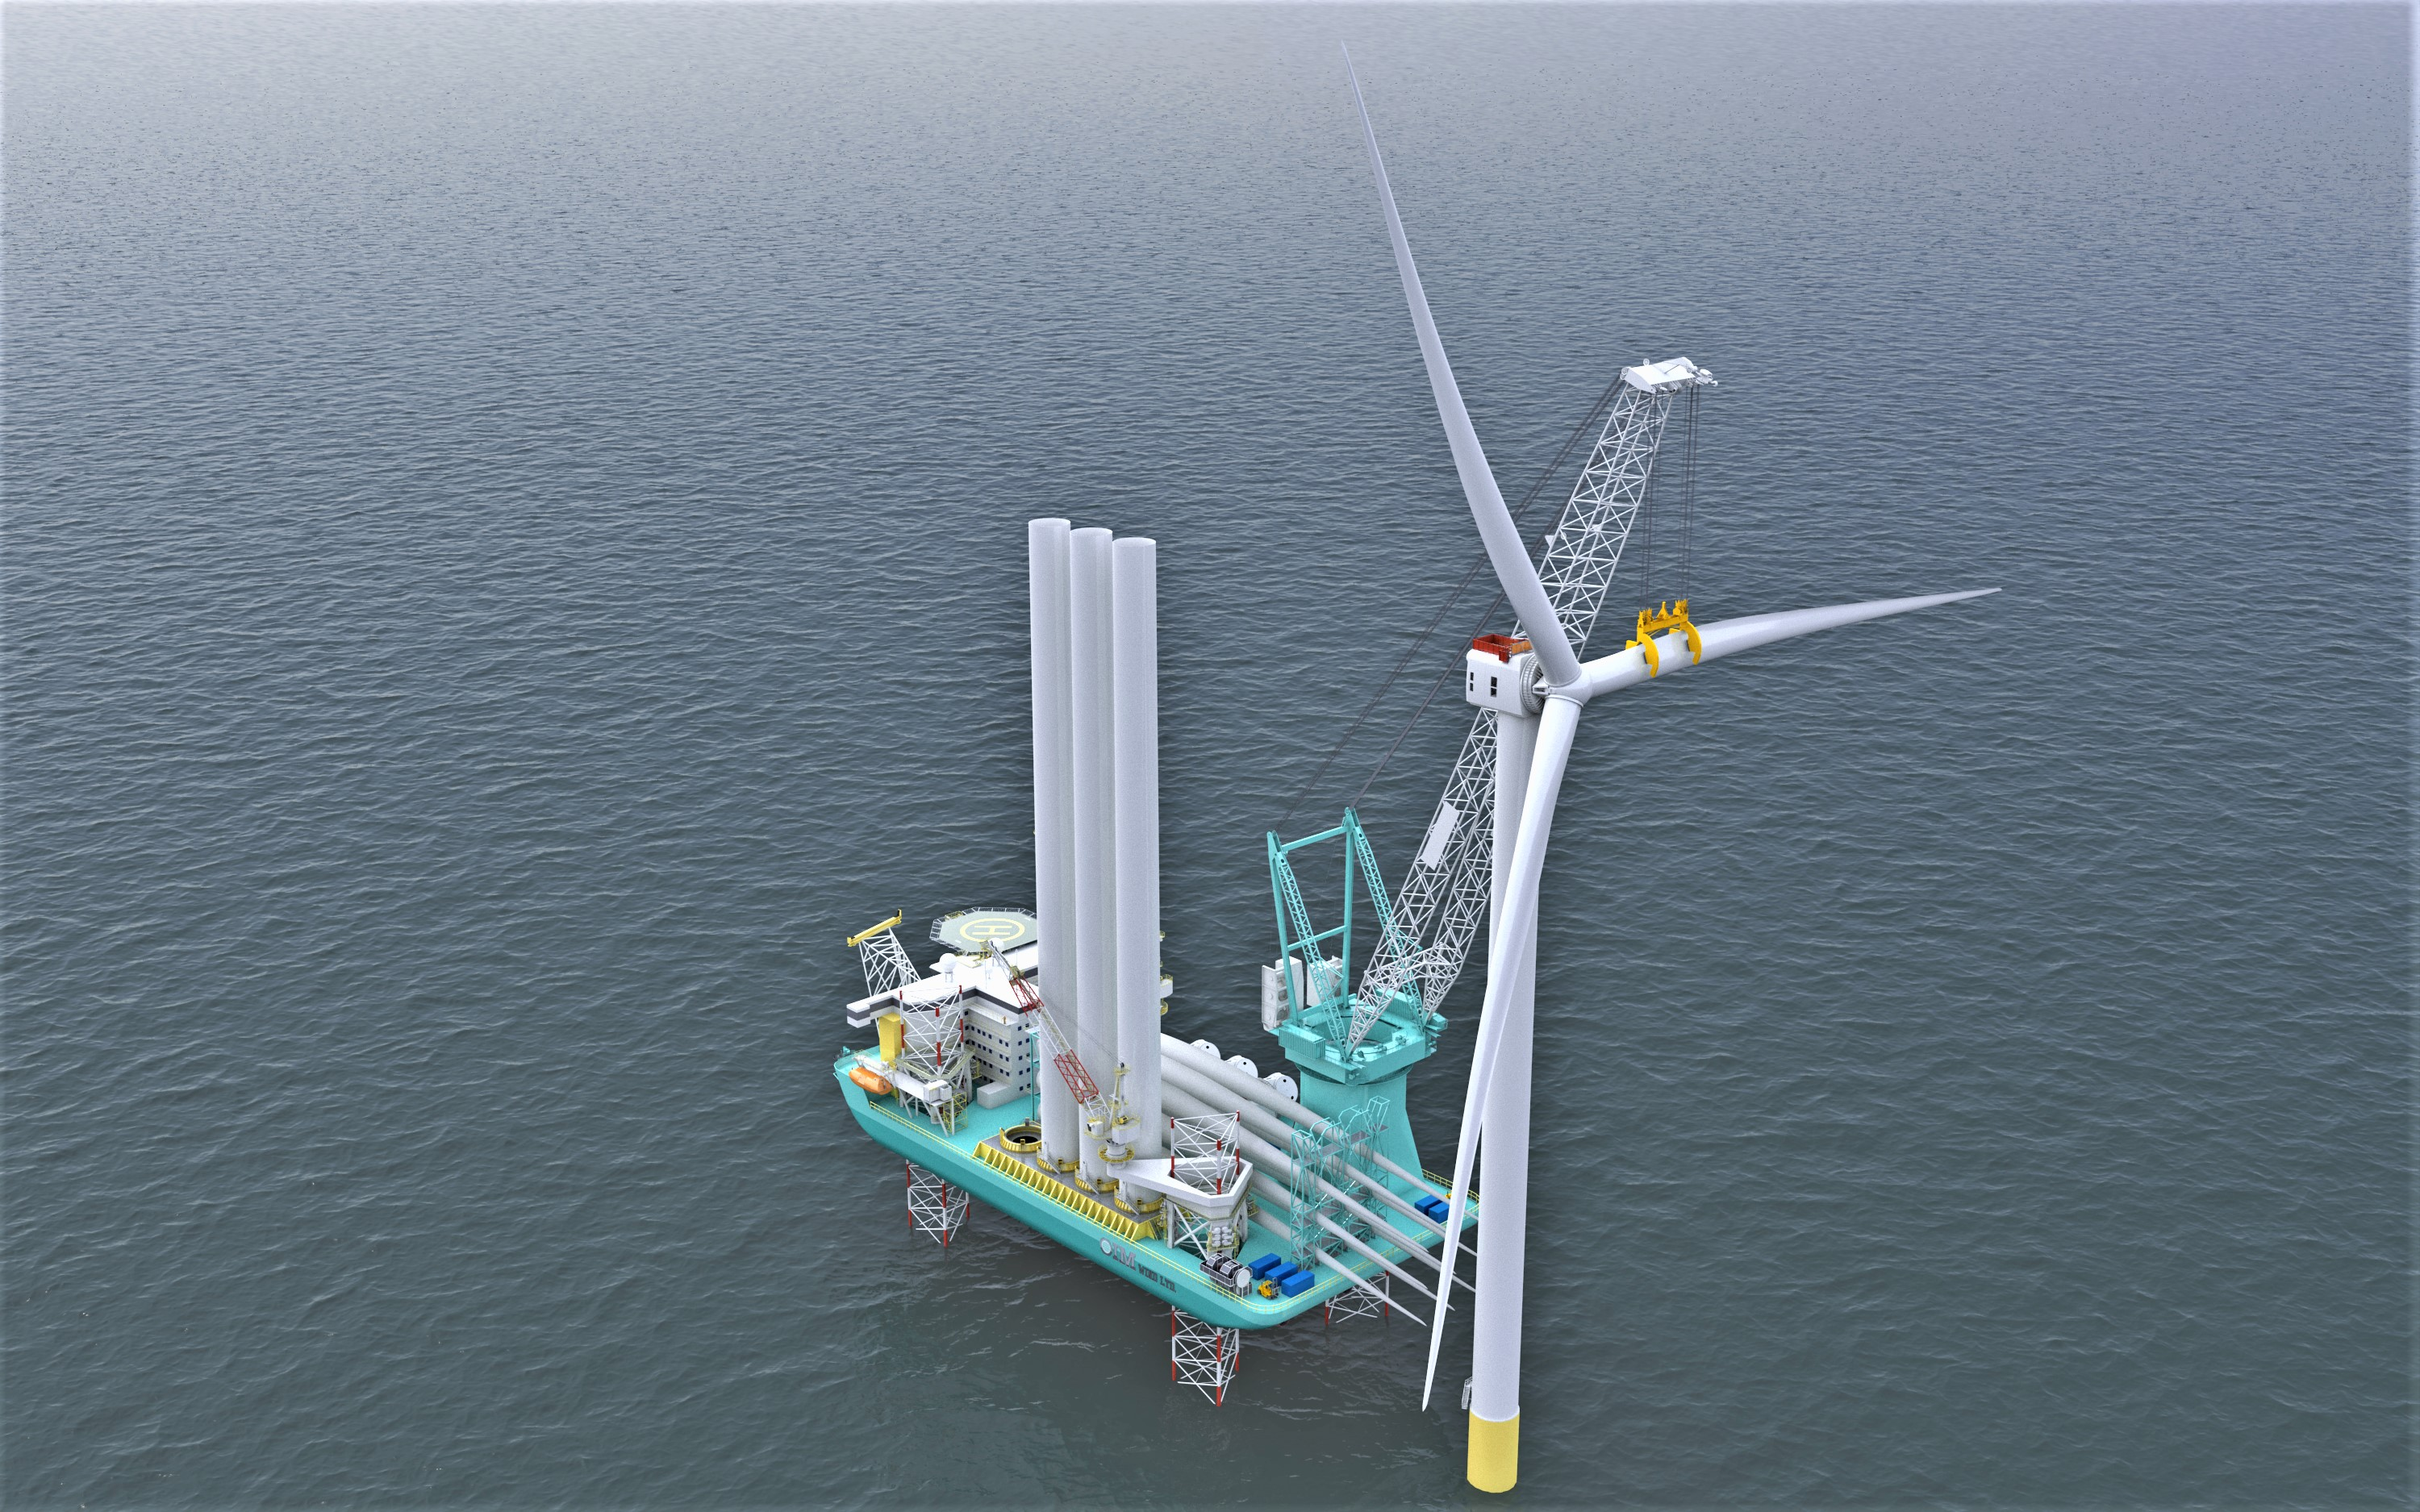 An image rendering new OIM vessel installing a next-generation wind turbine at sea